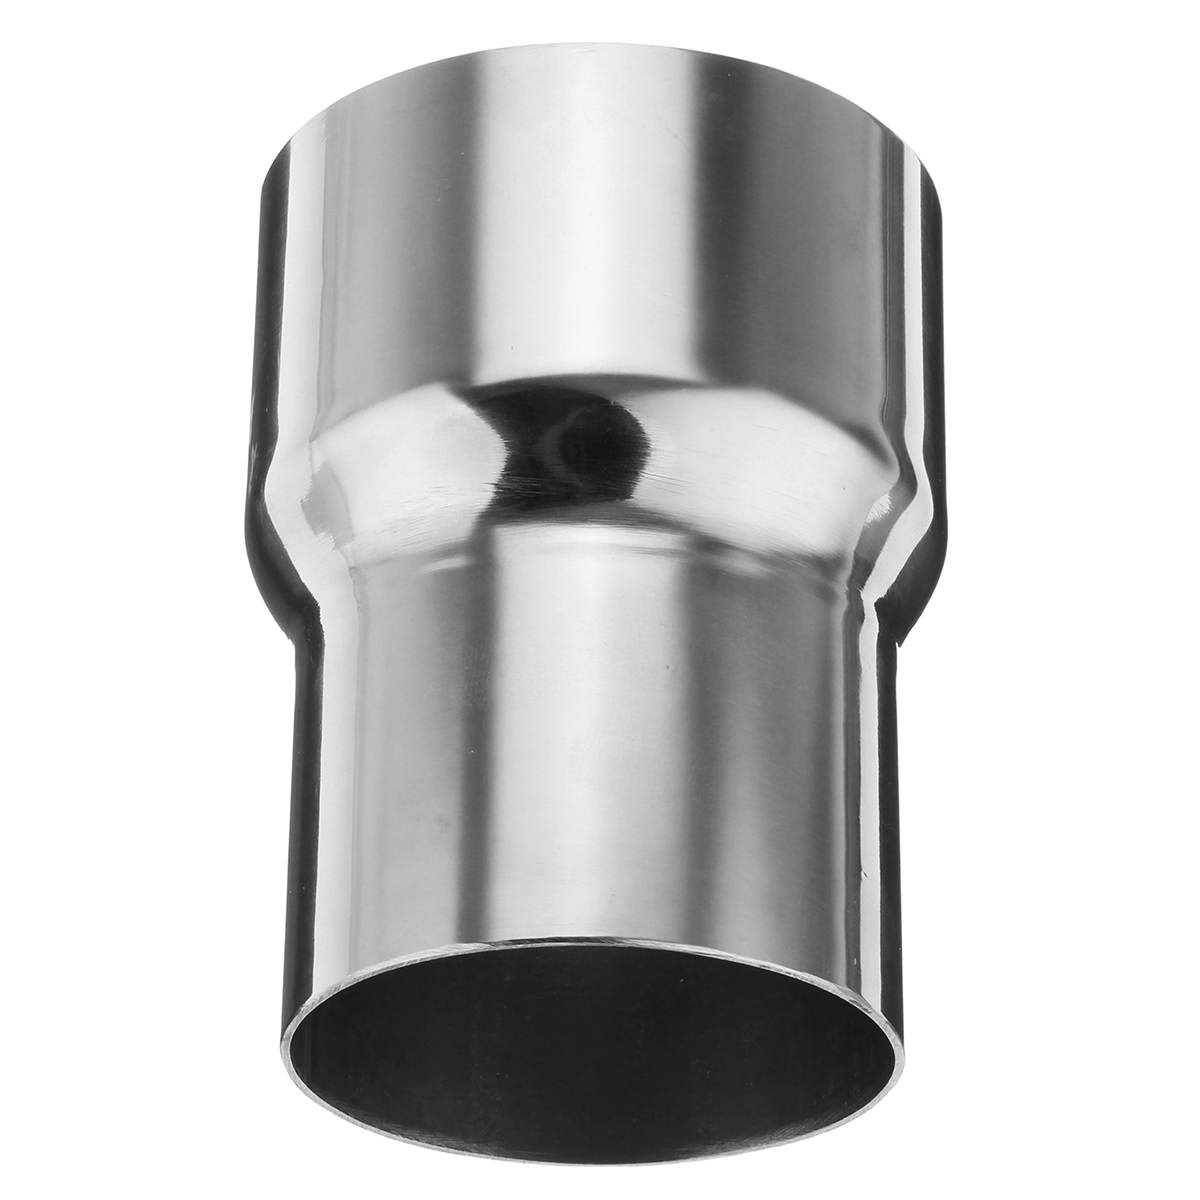 3 Inch To 2.5 Inch OD Stainless Standard Exhaust Pipe Connector Adapter Reducer Tube  sc 1 st  Alexnld.com : exhaust adapter pipe - www.happyfamilyinstitute.com